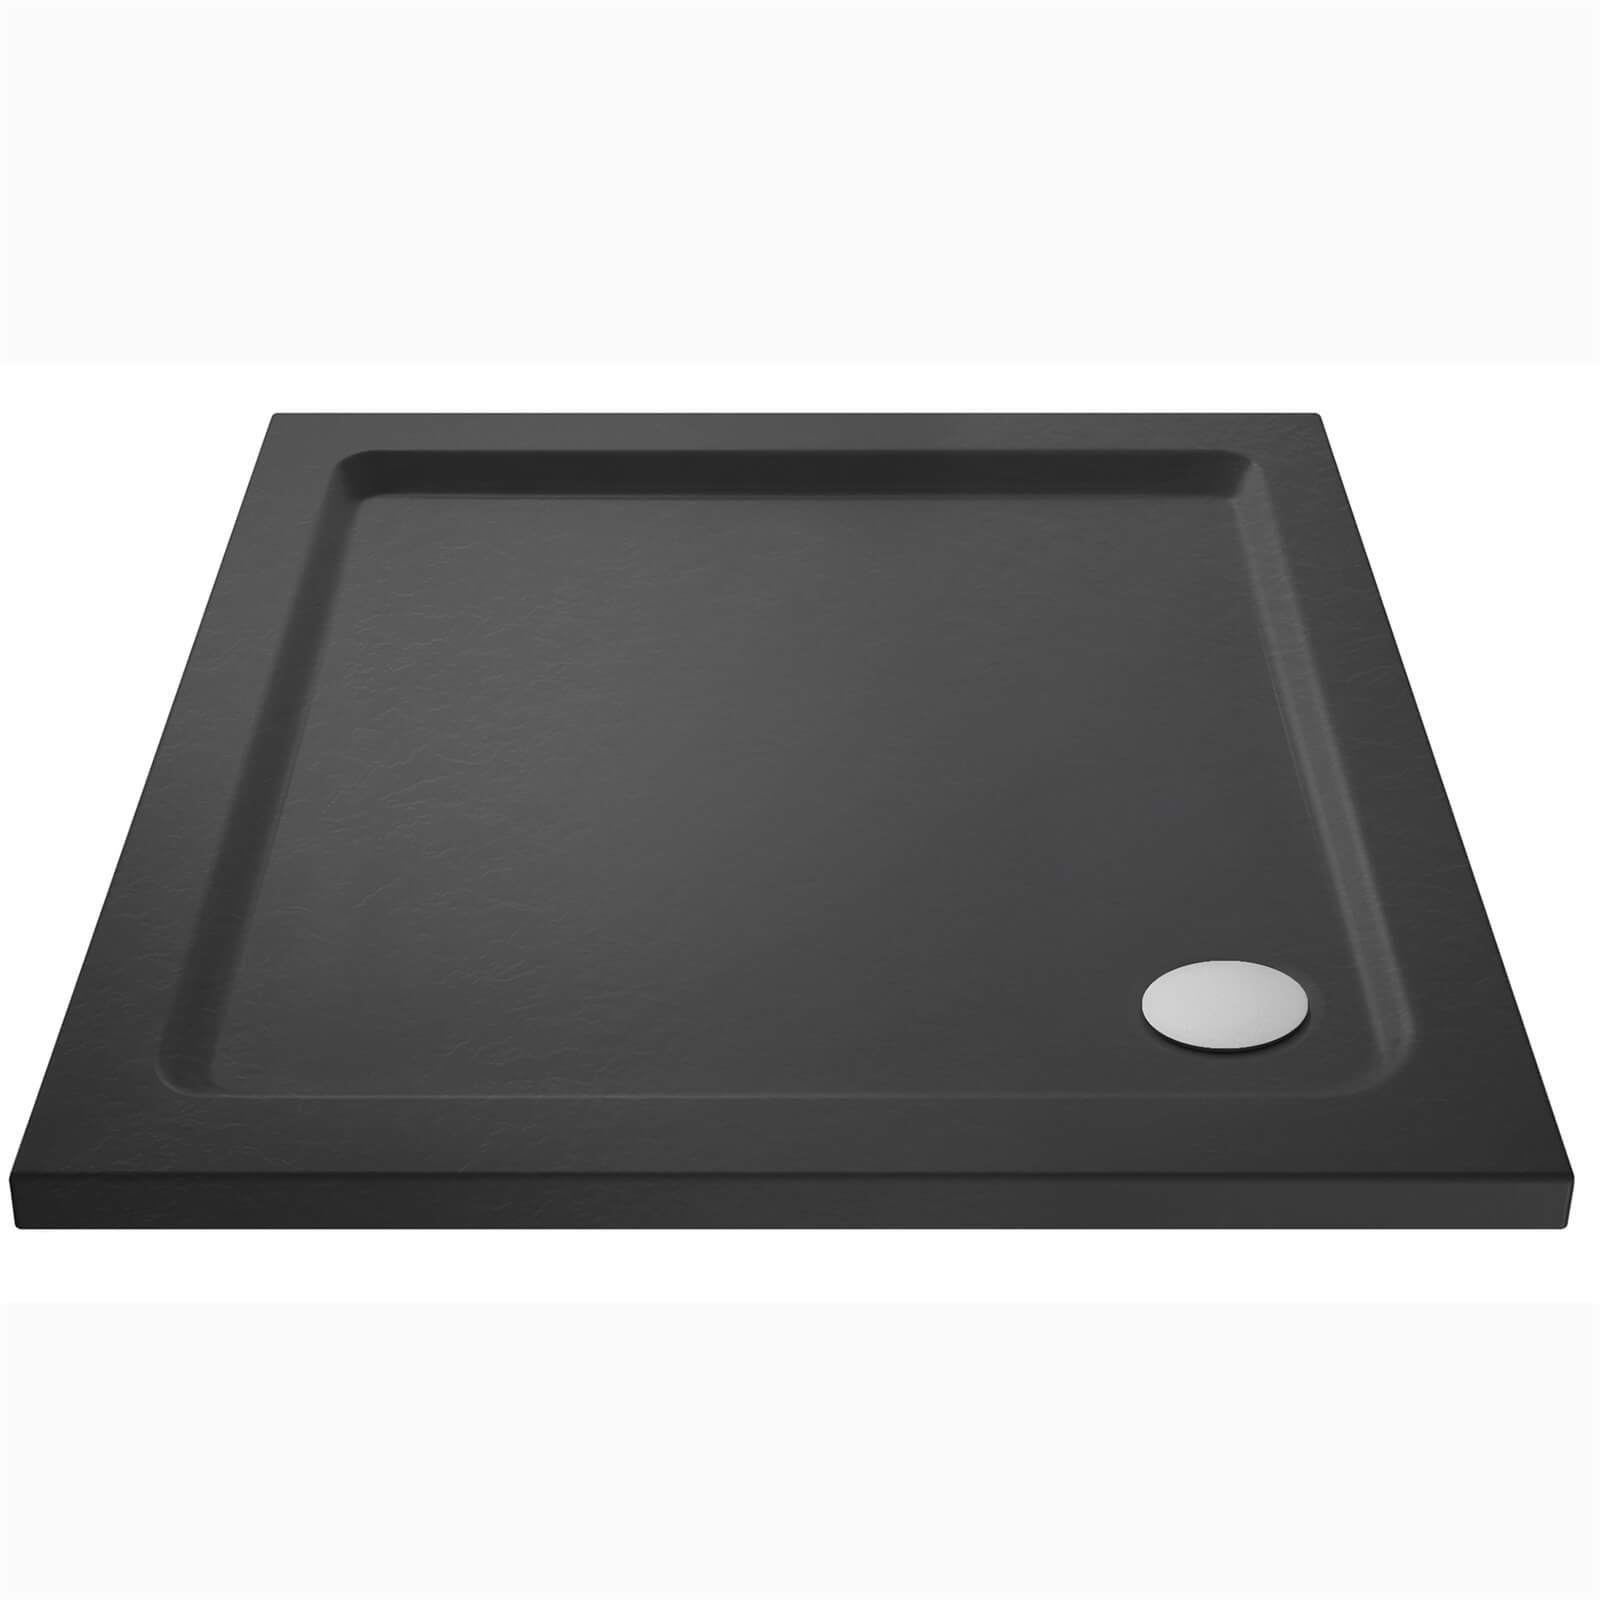 Balterley Slate Square Shower Tray - 900 x 900mm